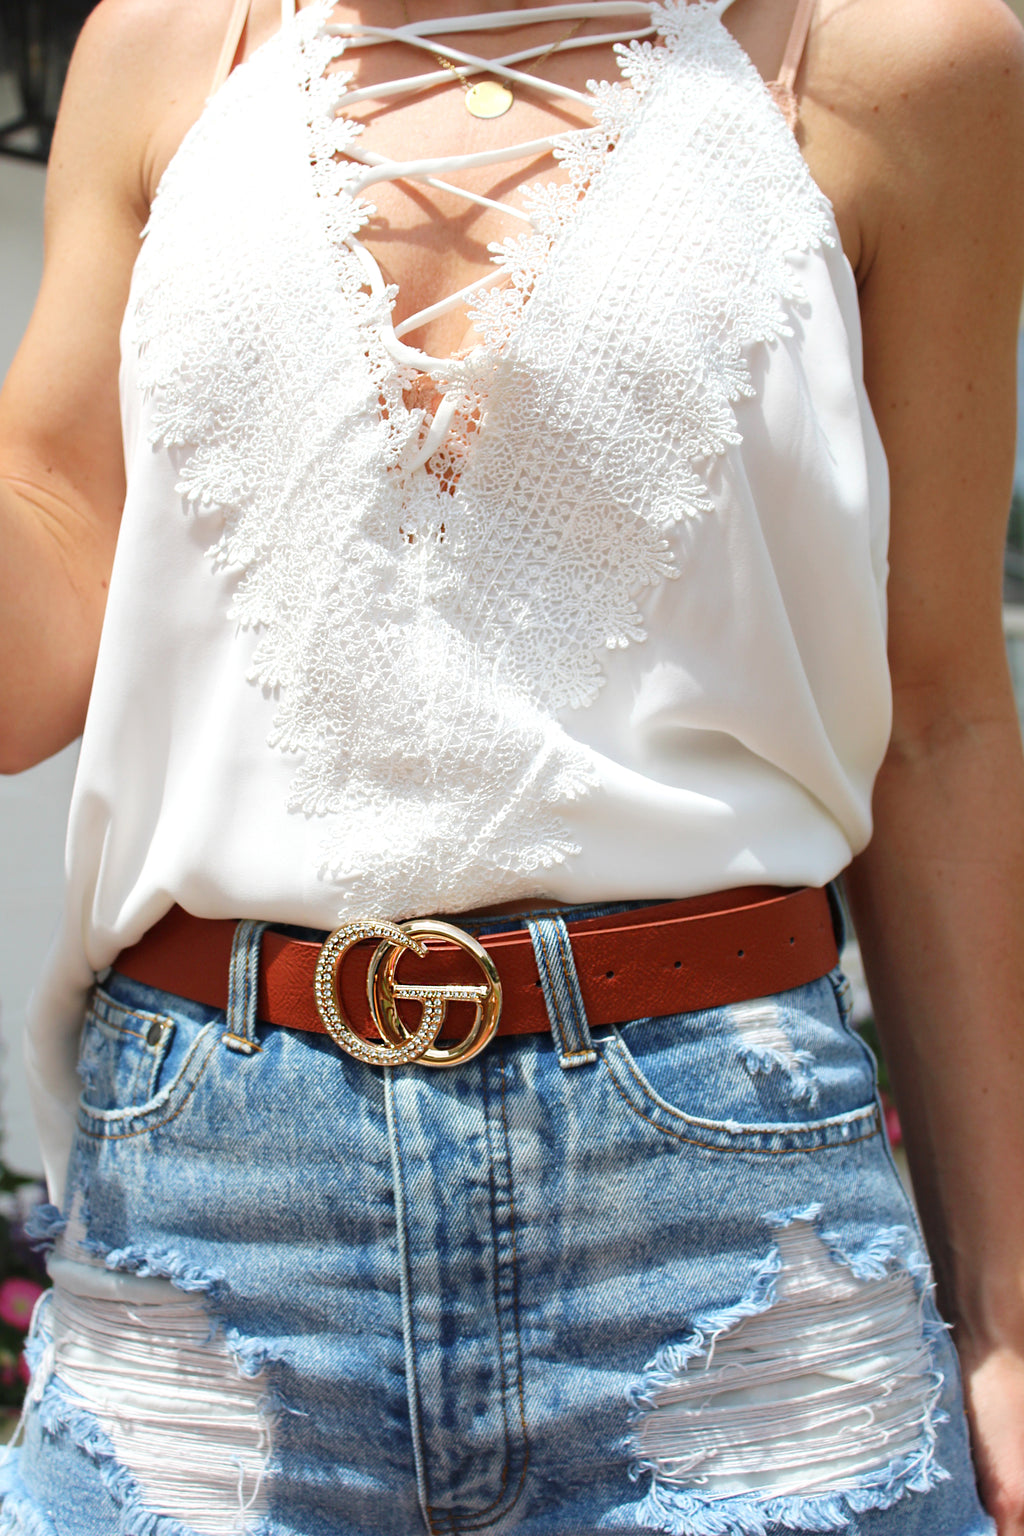 Dark Brown Rhinestone Studded Belt, Faux Leather Belt, Gold Buckle - Shop Cute Accessories Online Now at Kendry Collection Boutique